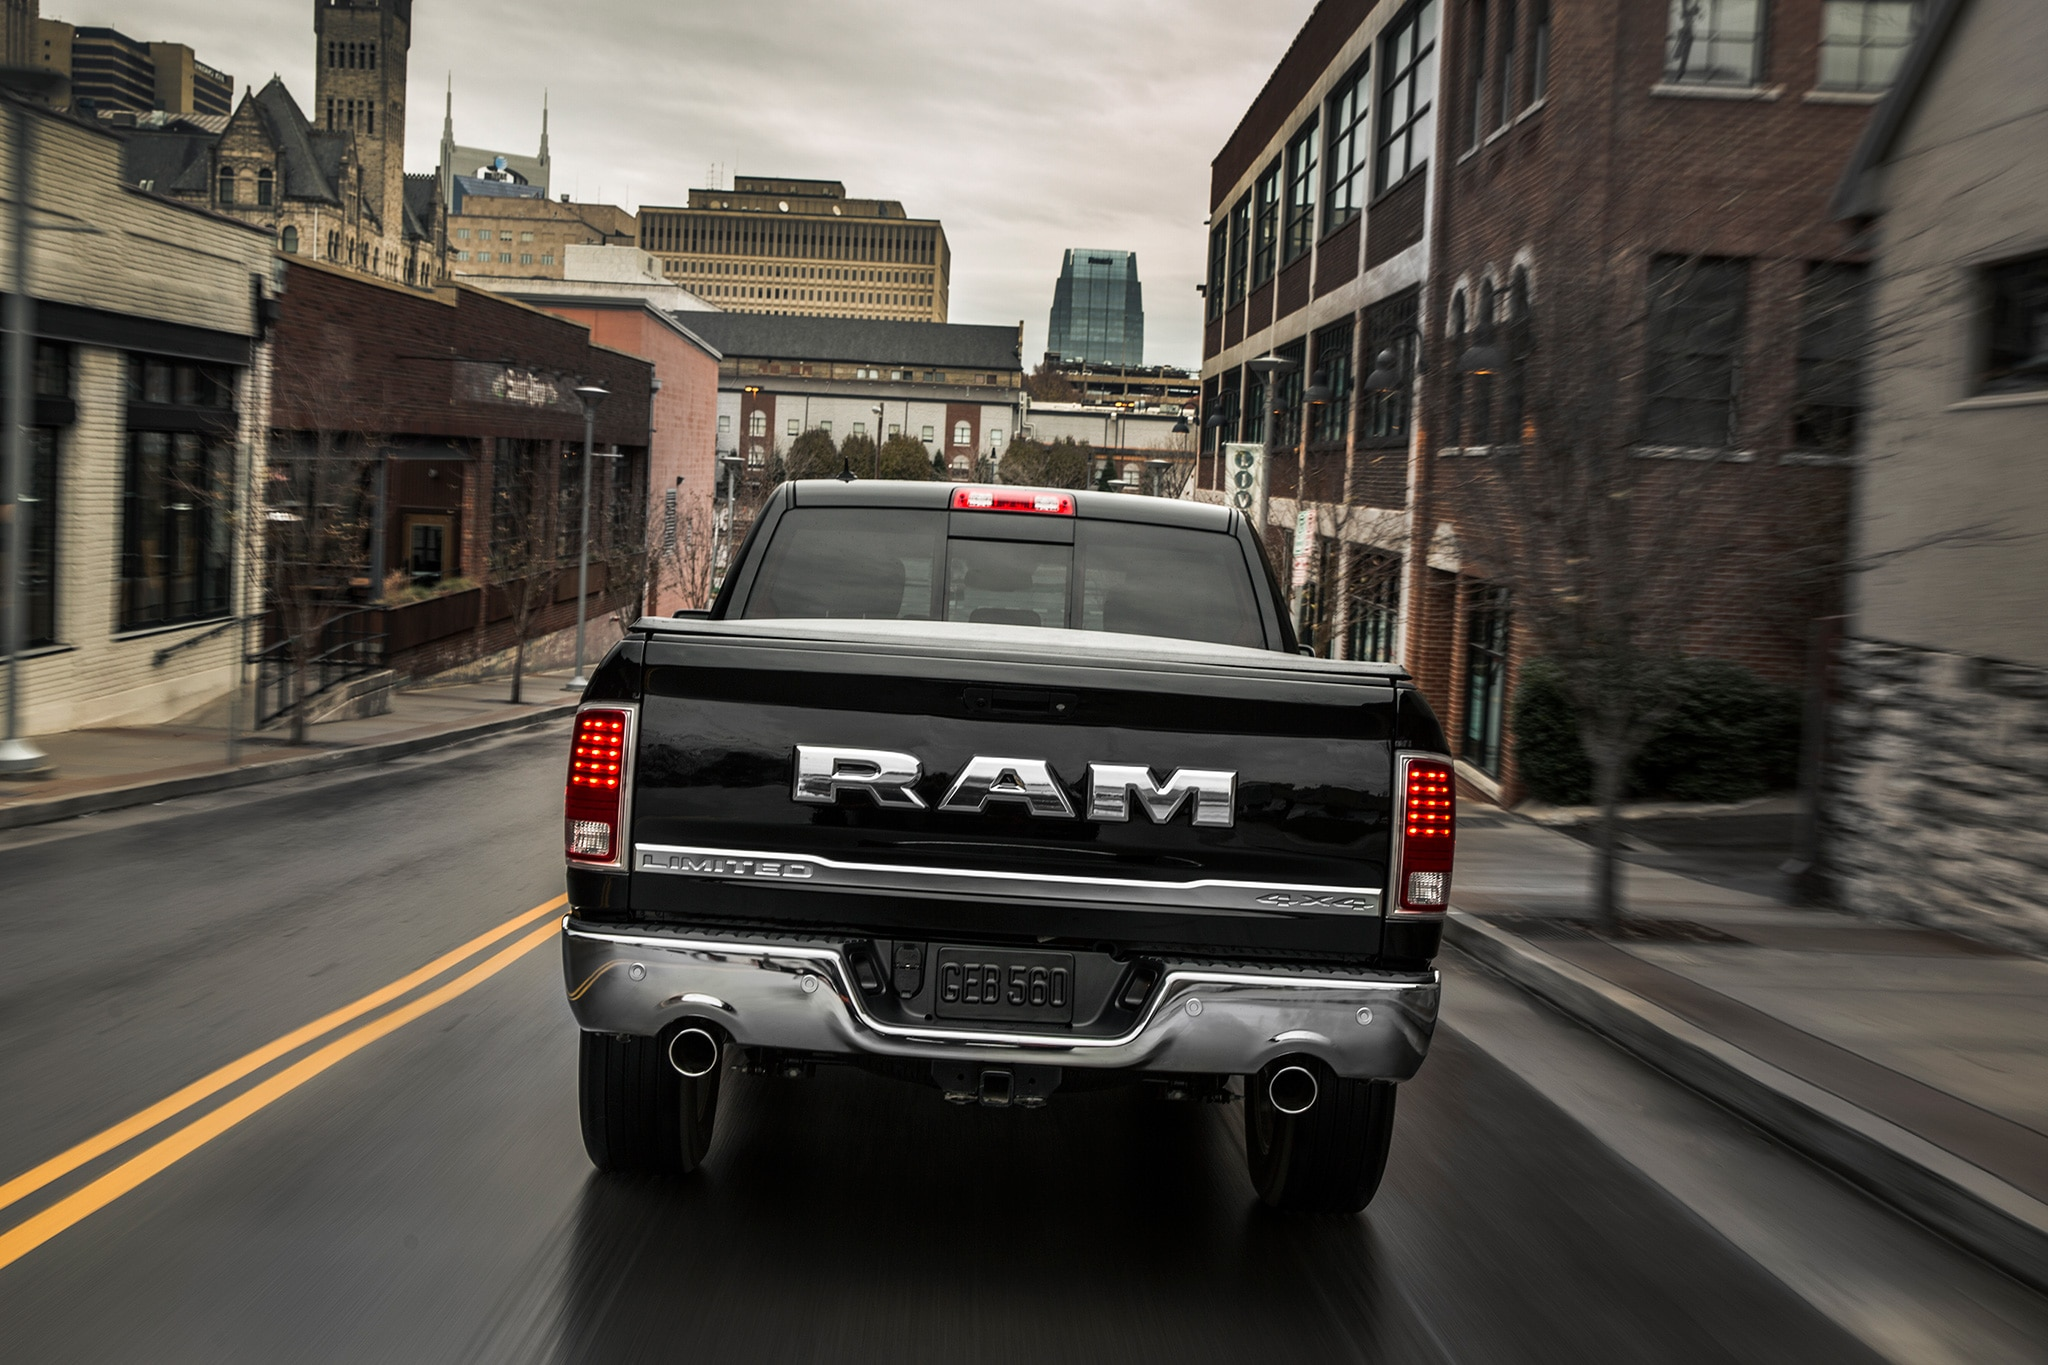 2017 Ram 1500 Rebel Spiced Up With New Delmonico Red Paint